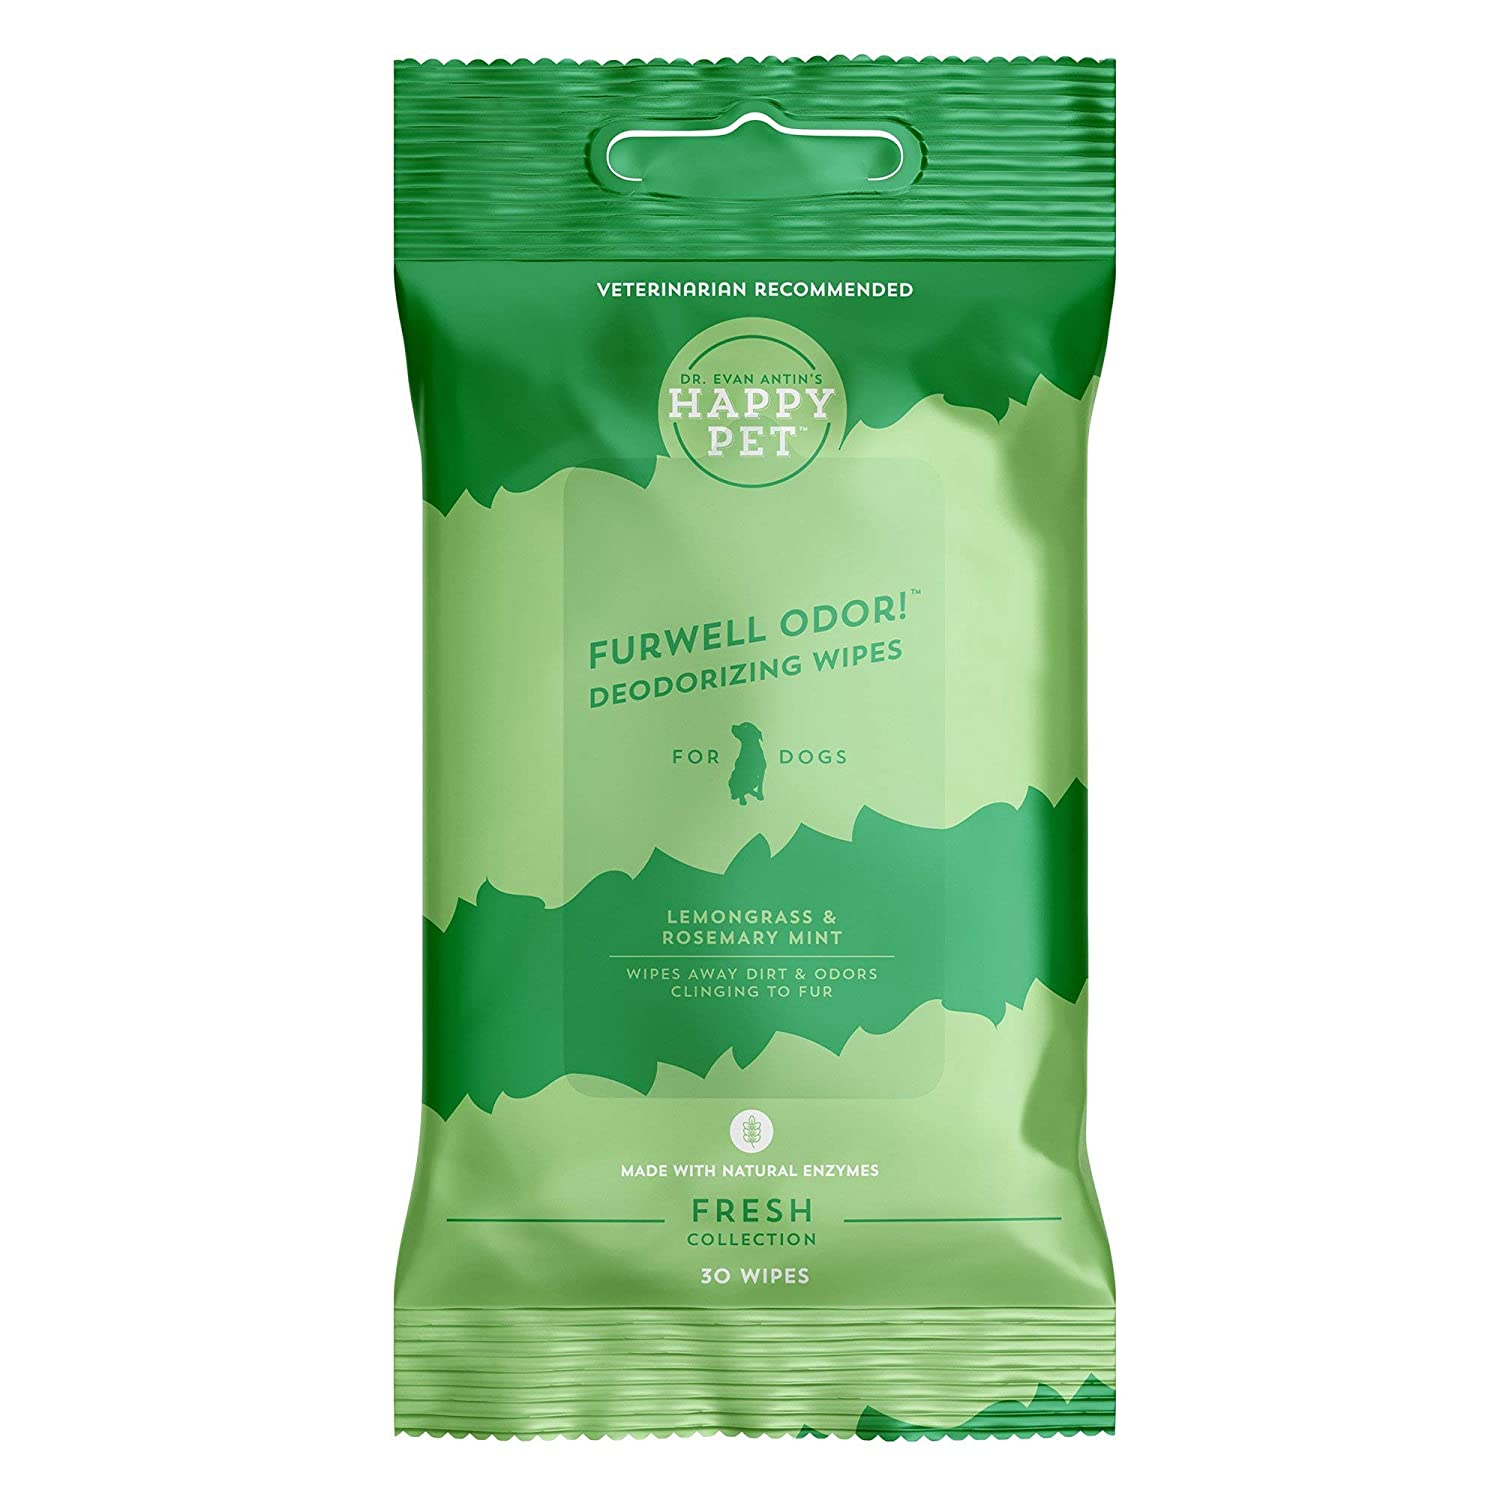 Happy Pet Furwell Odor Deodorizing Wipes   No Rinse Dog Wipes   with Natural Enzymes   Recommended by Veterinarian Dr. Evan Antin   30 Count